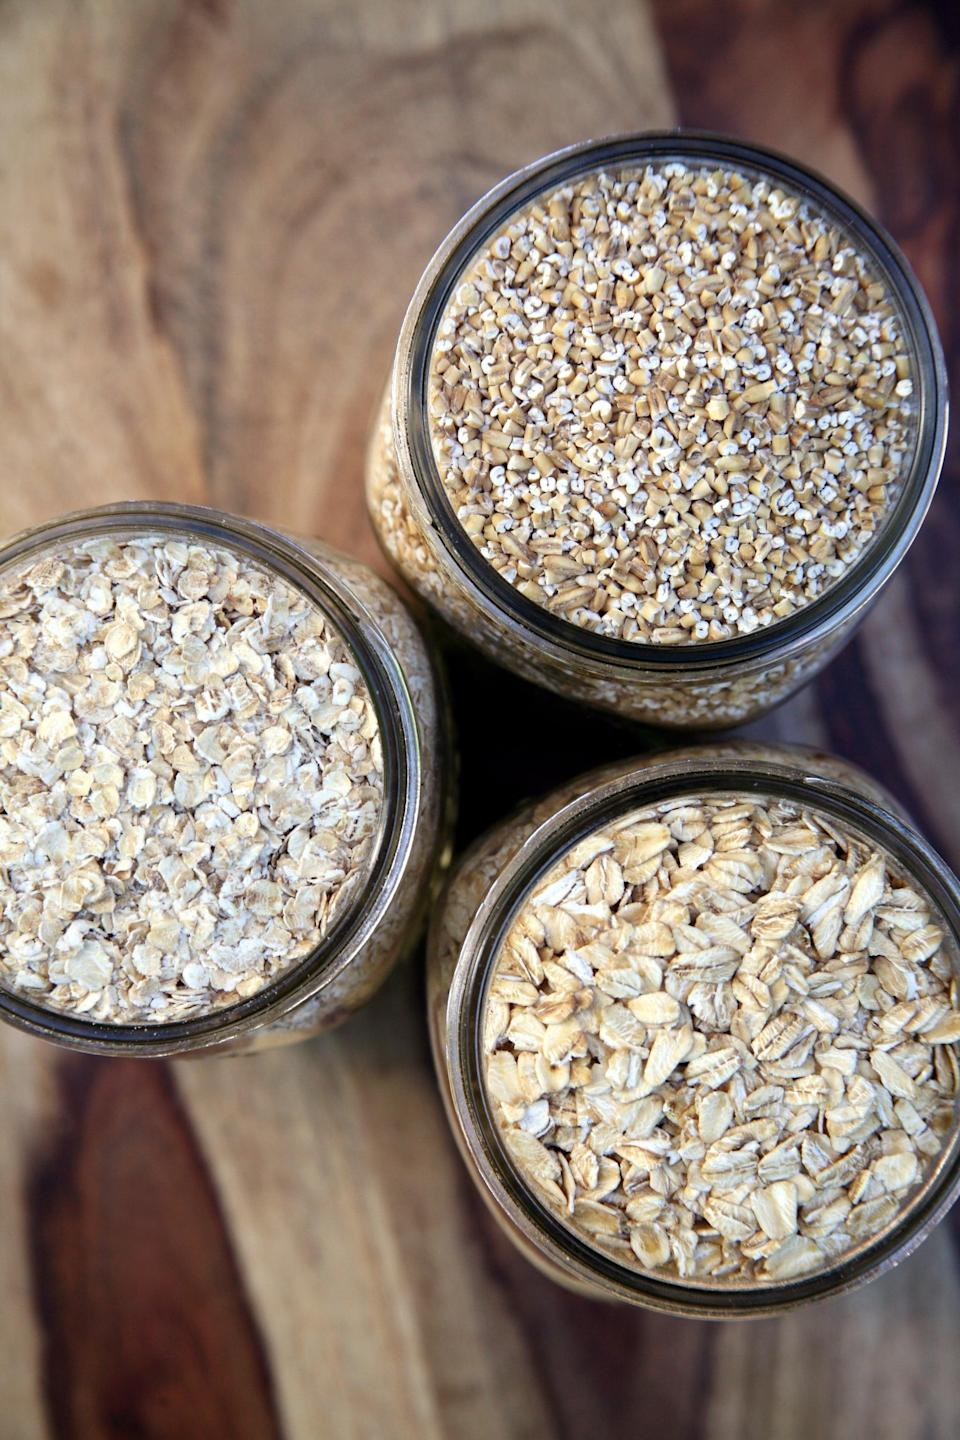 """<p>One of the best reasons to eat oatmeal is because it's high in fiber. Freeman said this whole grain has both soluble and insoluble fiber, which are both """"beneficial for promoting satiety, regular bowel movements, and controlling blood glucose levels."""" The soluble fiber in oatmeal can also help raise your HDL (good) levels of cholesterol and <a href=""""https://www.ncbi.nlm.nih.gov/pmc/articles/PMC5885279/"""" class=""""link rapid-noclick-resp"""" rel=""""nofollow noopener"""" target=""""_blank"""" data-ylk=""""slk:lower your LDL (bad) cholesterol levels"""">lower your LDL (bad) cholesterol levels</a> by reducing the absorption of cholesterol into your bloodstream. Also, oats have a lower glycemic index than potatoes or white bread, another way it can help to stabilize blood-sugar levels.</p> <p>There are <a href=""""https://www.popsugar.com/fitness/Comparison-Steel-Cut-Oats-Old-Fashioned-Oats-Quick-Oats-5321167"""" class=""""link rapid-noclick-resp"""" rel=""""nofollow noopener"""" target=""""_blank"""" data-ylk=""""slk:various forms of oatmeal"""">various forms of oatmeal</a>, and similar to other types of whole grains, the less processed, the more beneficial, Freeman explained. See the ranking below, from least processed to more processed. As you can see, oat groats are highest in fiber.</p> <ol> <li><strong>Oat groats:</strong> The complete oat kernel is kept intact with endosperm and germ. The texture is hearty and chewy and very similar to cooked brown rice.<br> <a href=""""https://www.bobsredmill.com/organic-whole-oat-groats.html"""" class=""""link rapid-noclick-resp"""" rel=""""nofollow noopener"""" target=""""_blank"""" data-ylk=""""slk:1/4 cup uncooked"""">1/4 cup uncooked</a>: 180 calories, 34 grams carbs, five grams fiber, five grams protein</li> <li><strong>Steel-cut oats:</strong> The husk has been removed, and the kernel has been cut into smaller pieces. They have a thick, chewy texture.<br> <a href=""""https://www.bobsredmill.com/organic-steel-cut-oats.html"""" class=""""link rapid-noclick-resp"""" rel=""""nofollow noopener"""" target=""""_blank"""" data-ylk="""""""